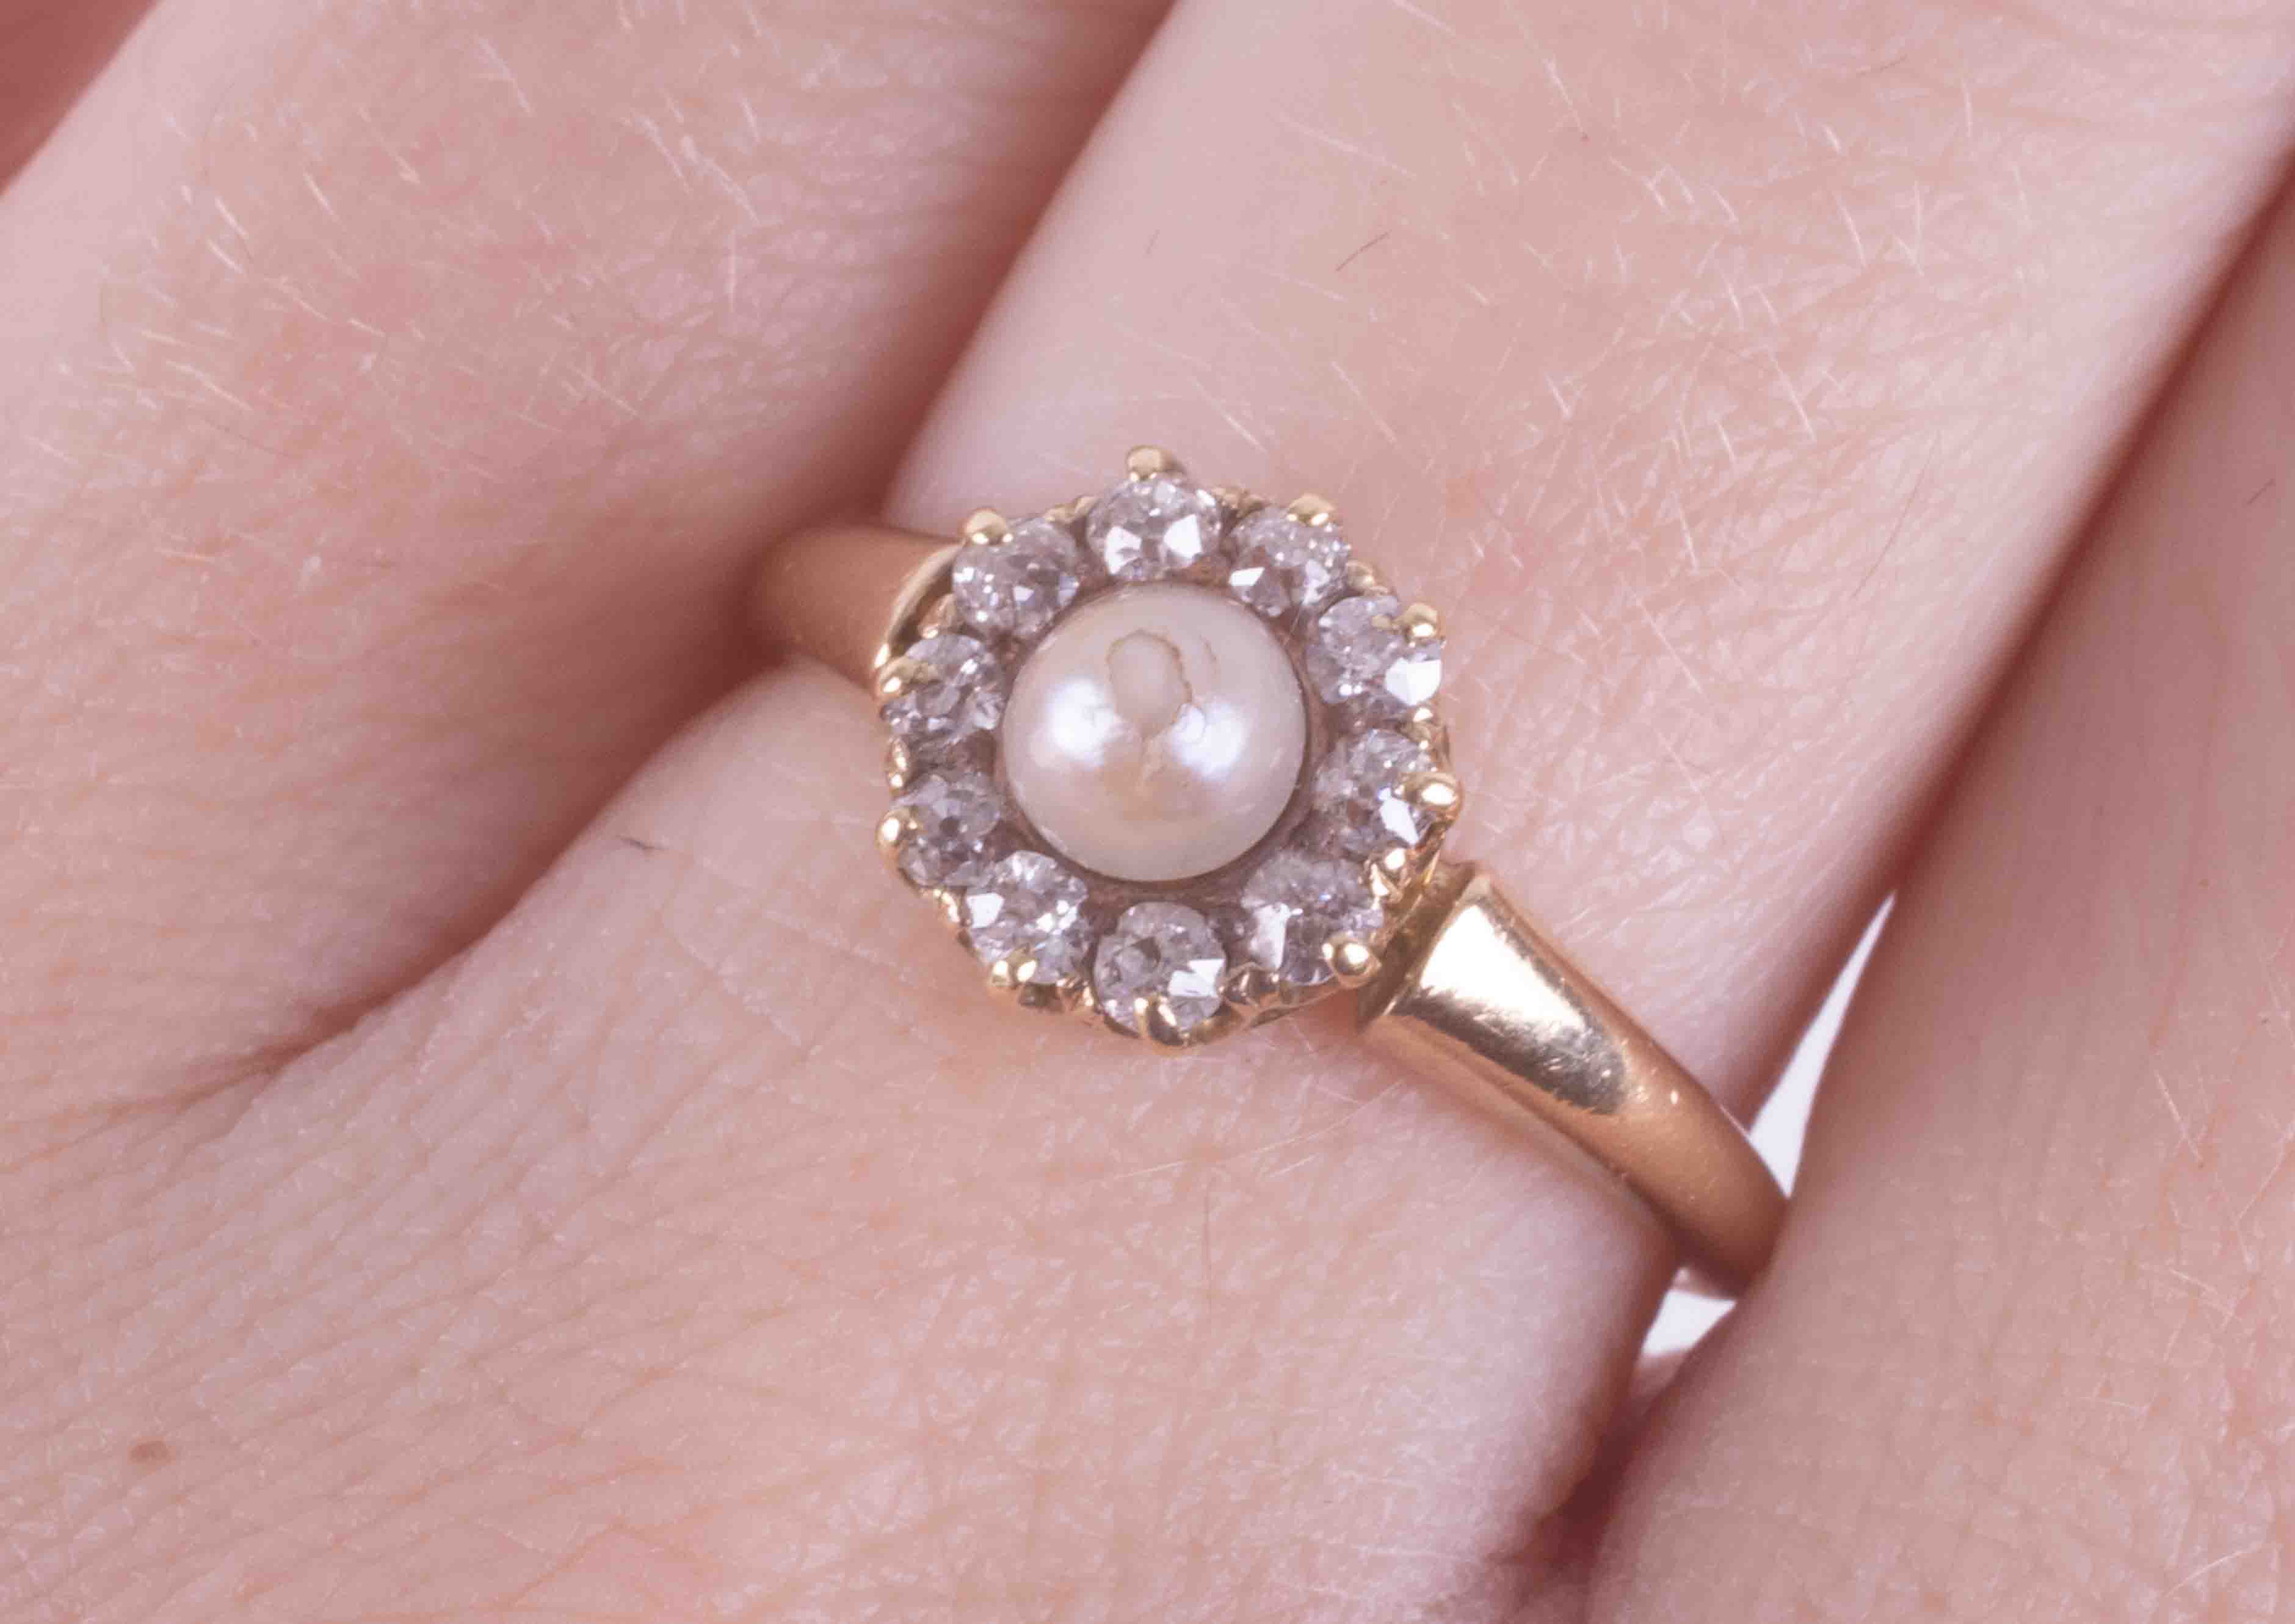 An 18ct yellow gold (not hallmarked or tested) antique ring set with a central pearl surrounded by - Image 2 of 2